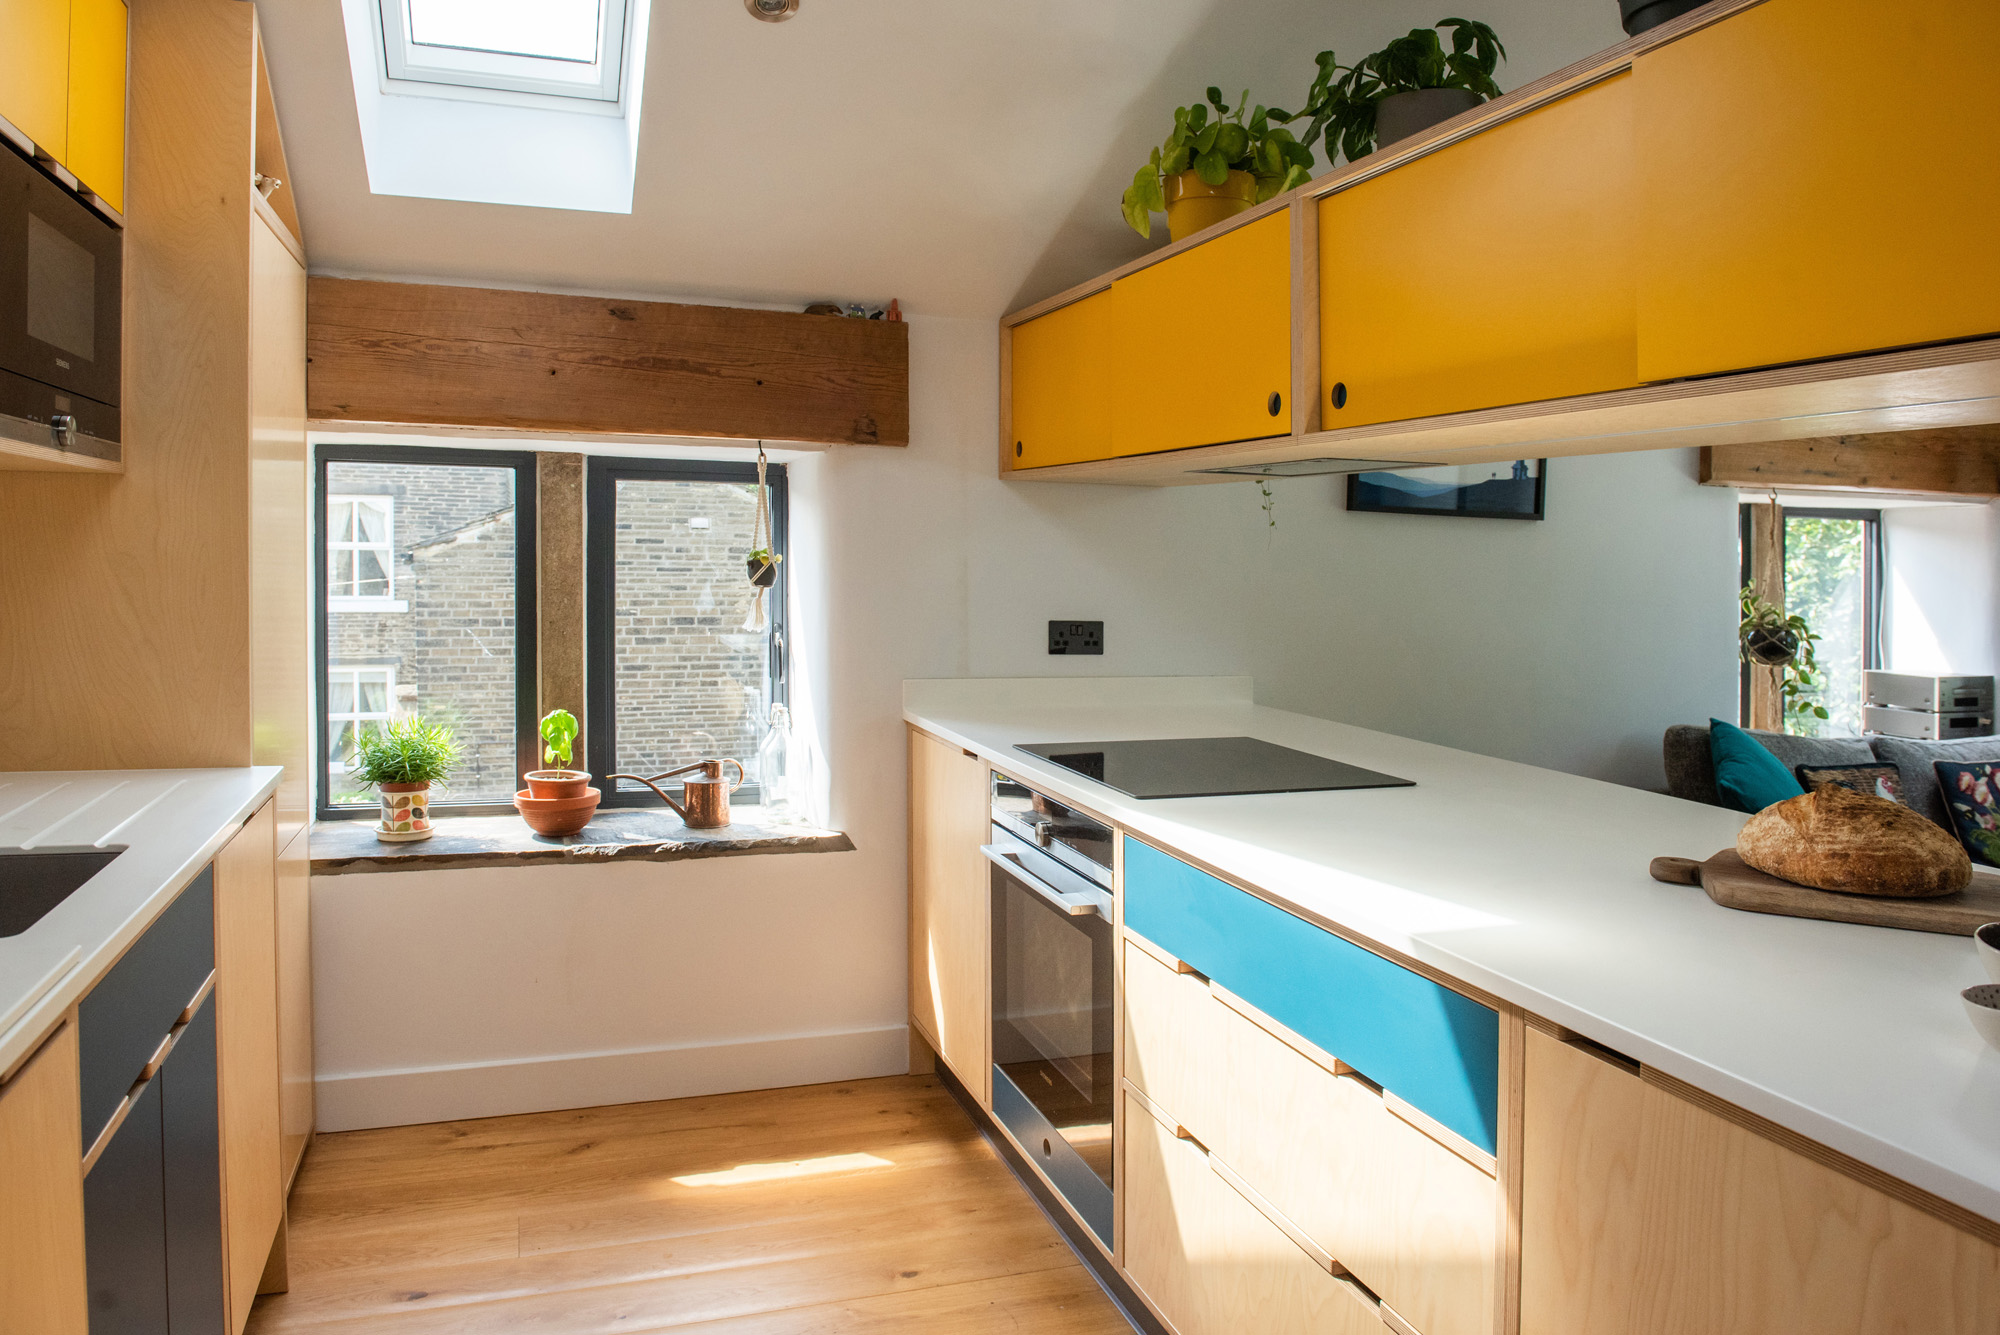 small galley kitchen in converted barn